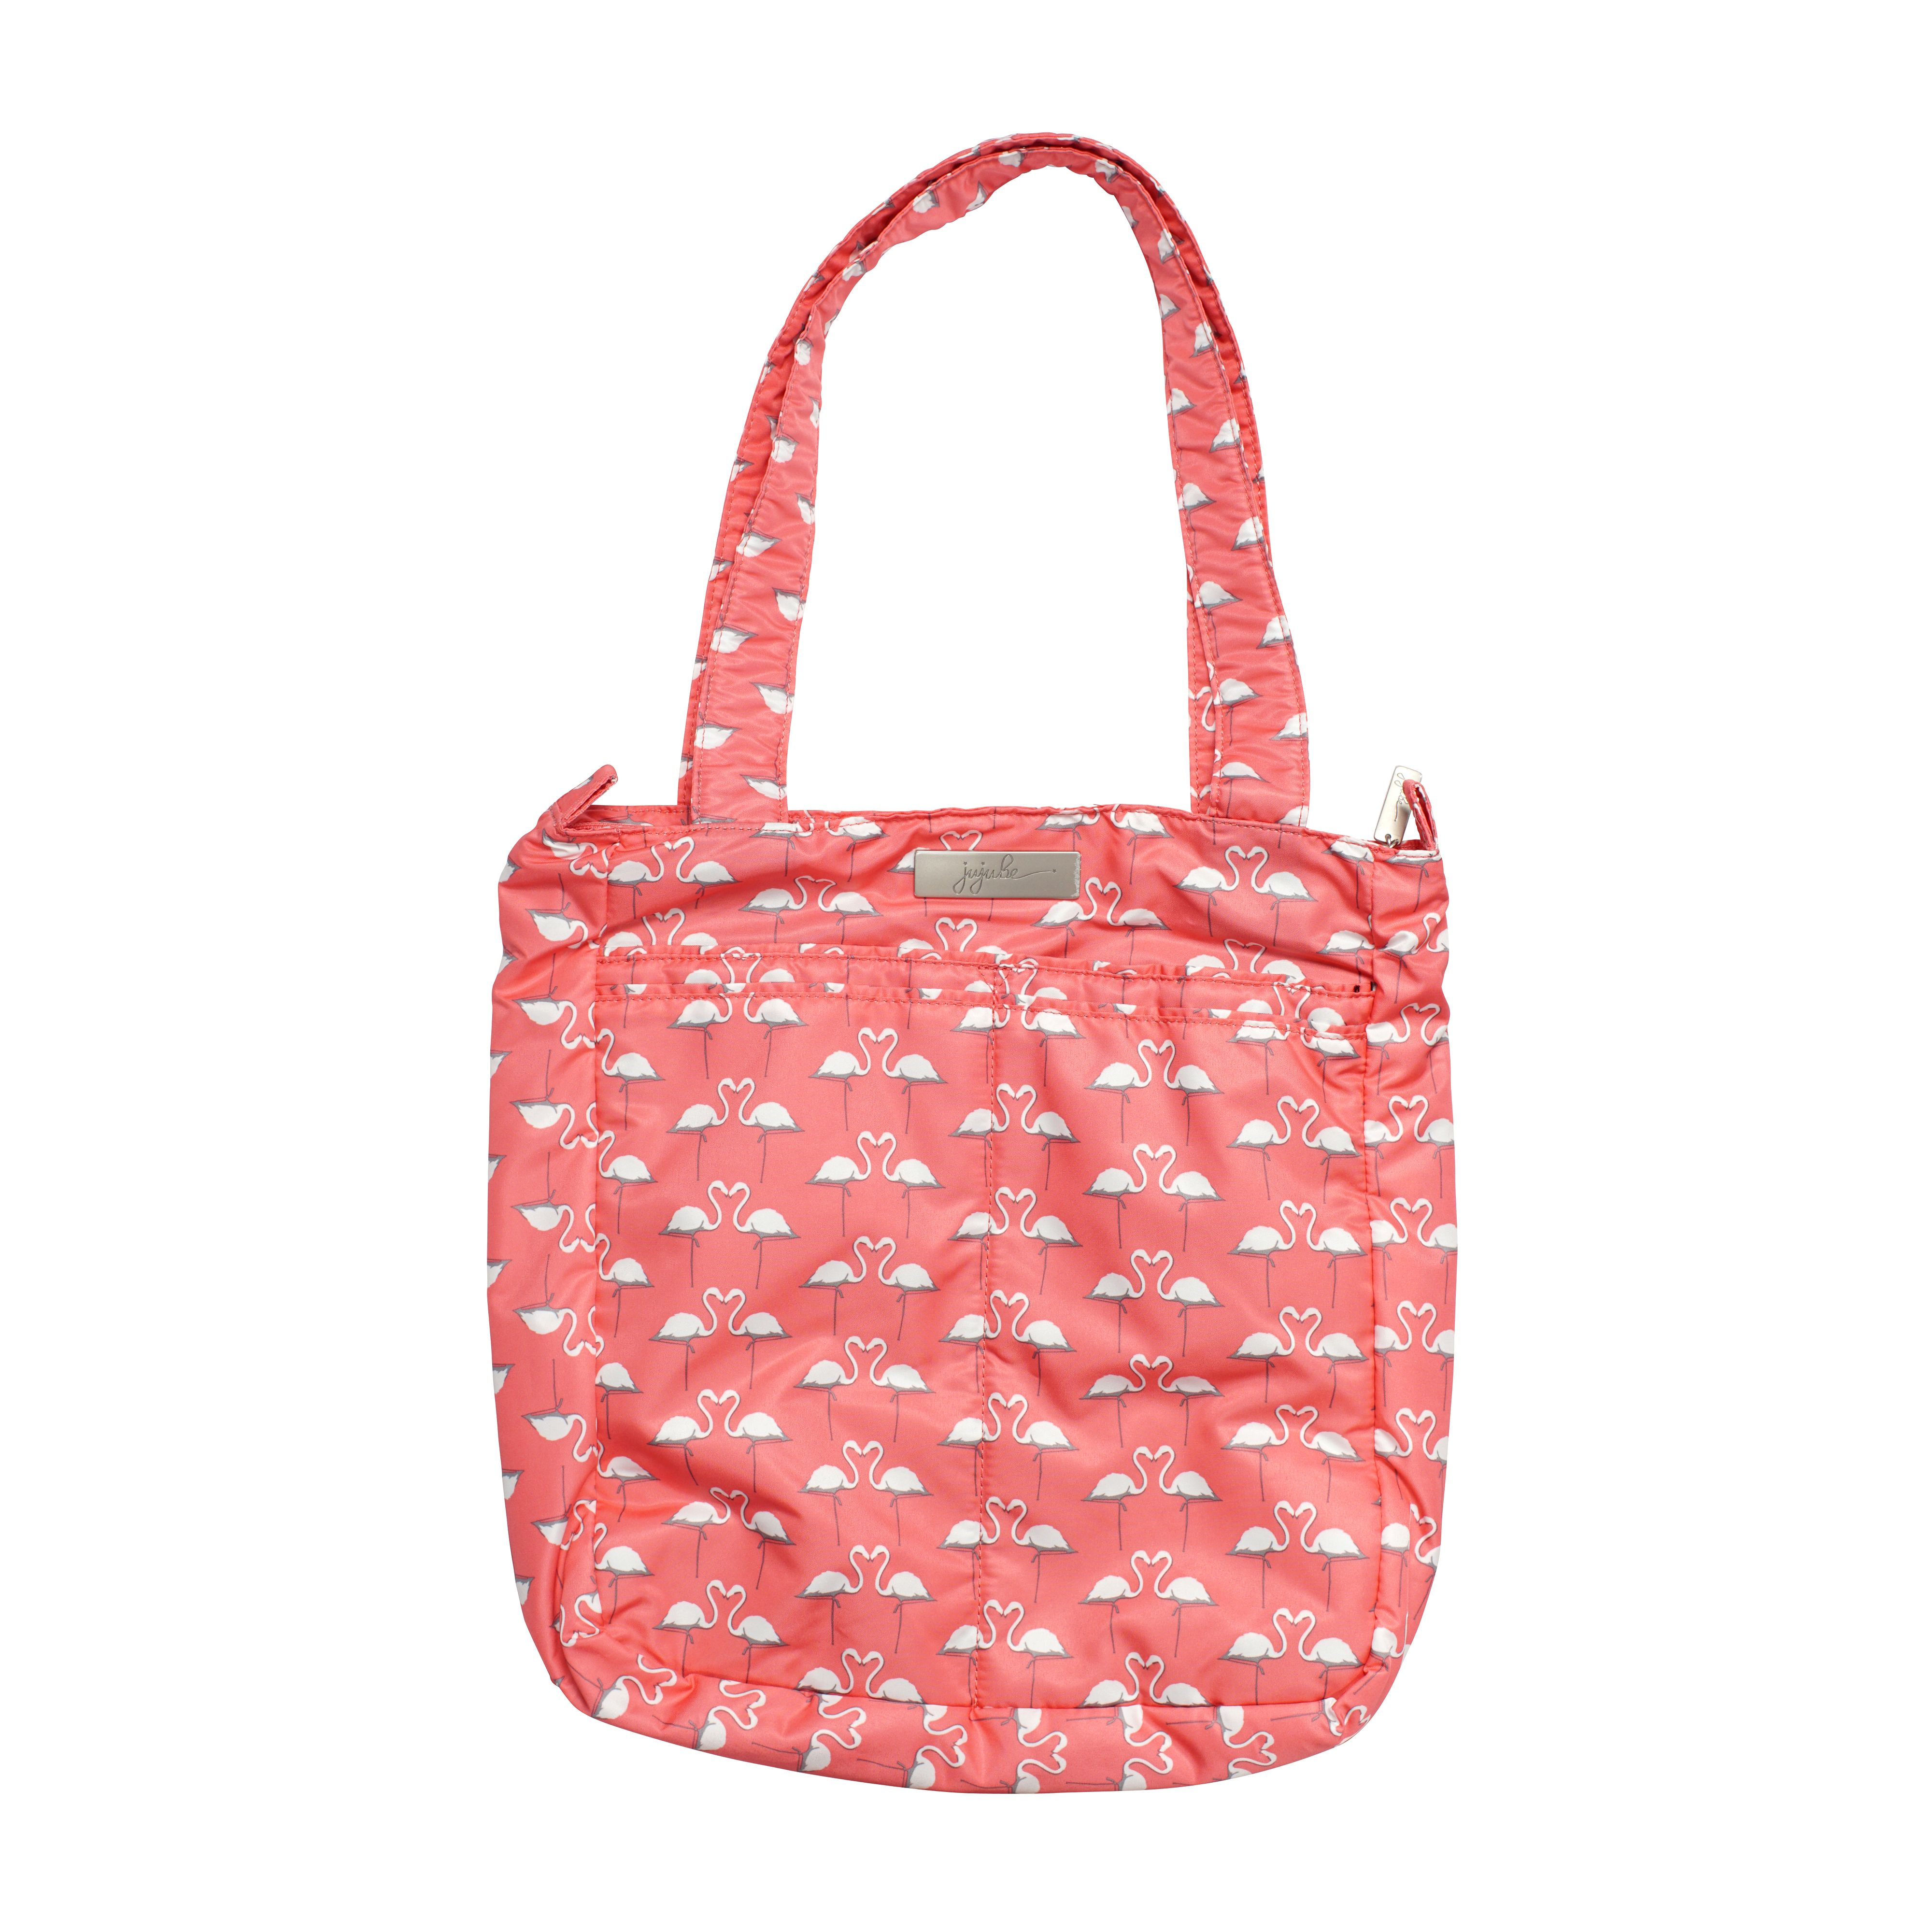 Be Light Key West Bags, Tote bag, Mothers bag